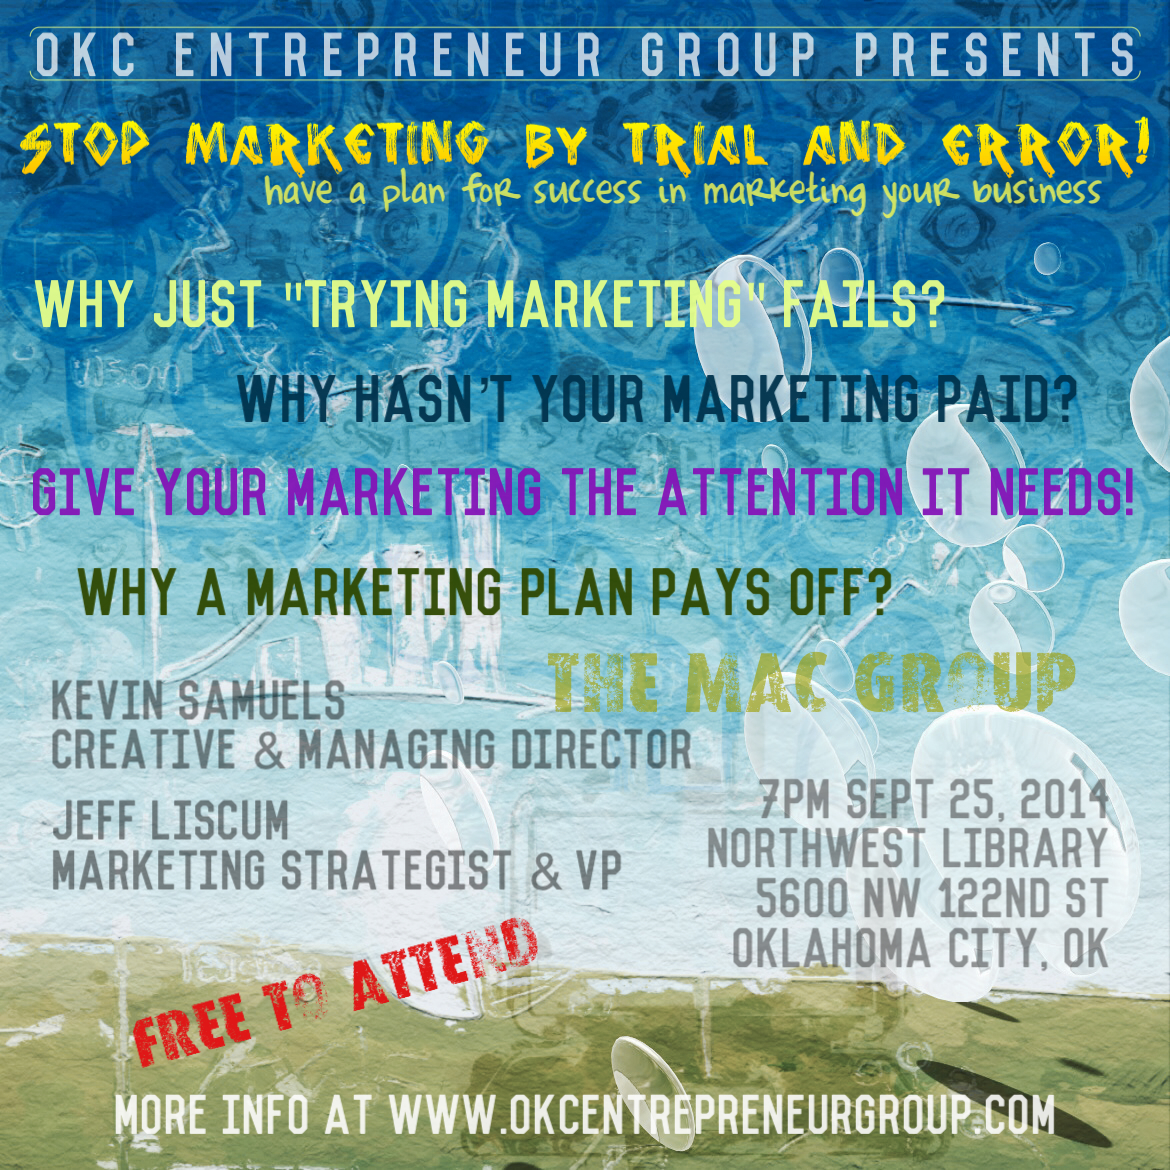 MAC Group - Stop Marketing by Trial and Error!.jpg